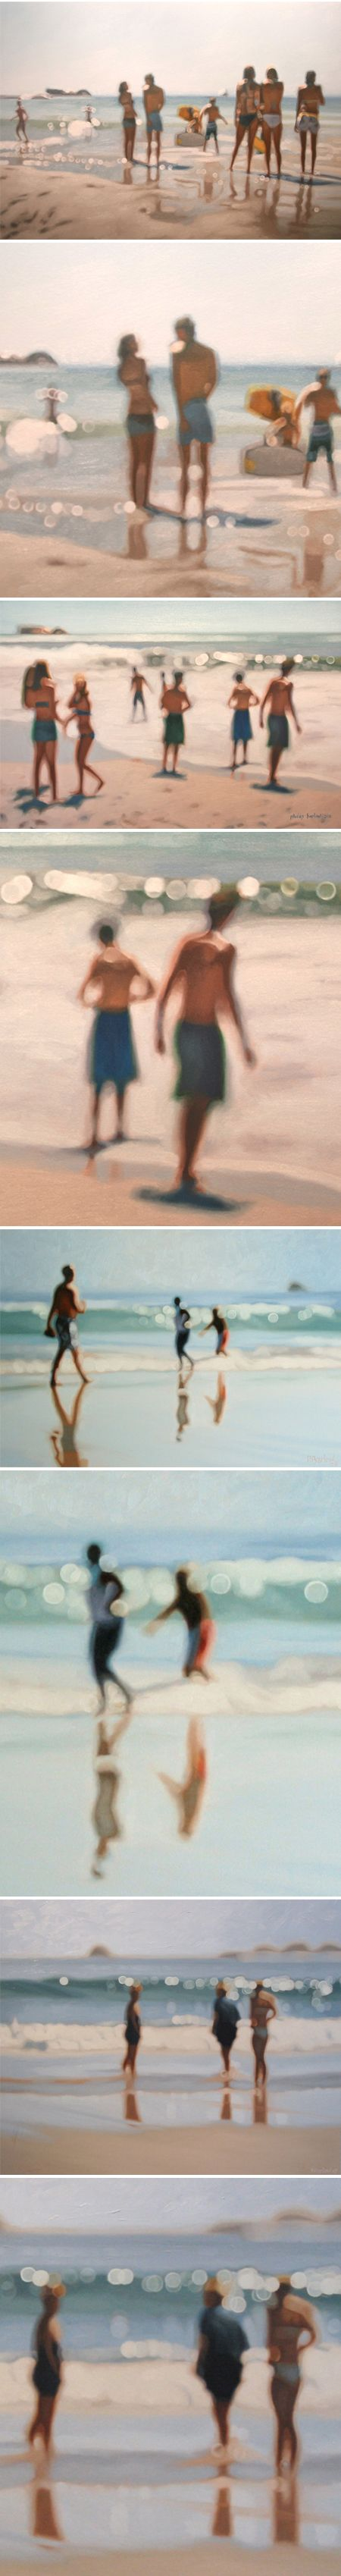 oil paintings by South African artist Philip Barlow